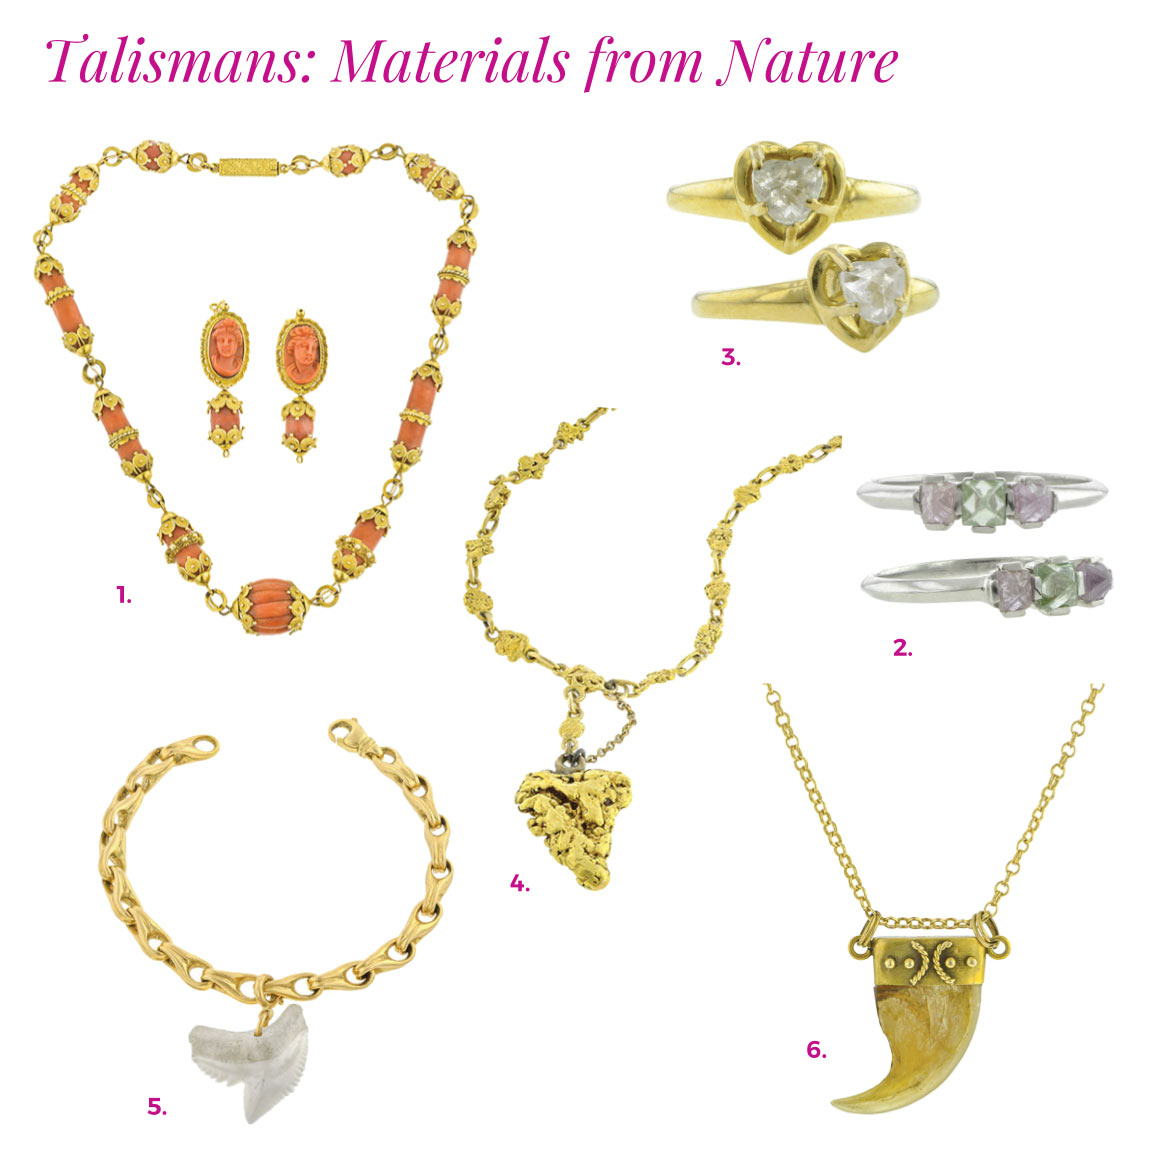 doyle doyle natural material talismans catalog